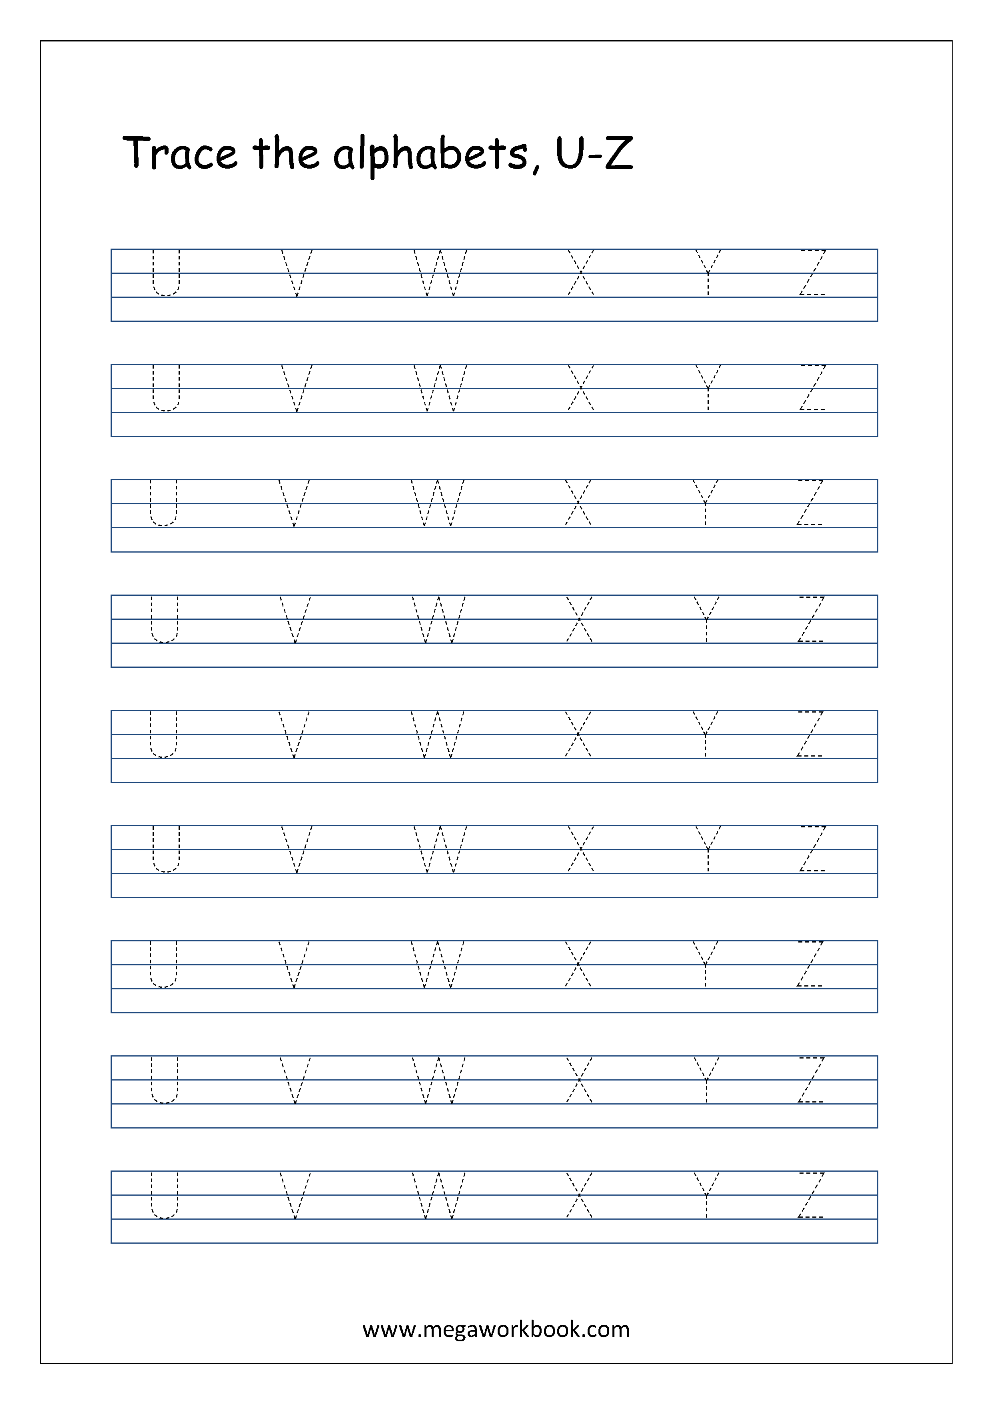 Worksheet Letters For Tracing free english worksheets alphabet tracing capital letters worksheet u to z